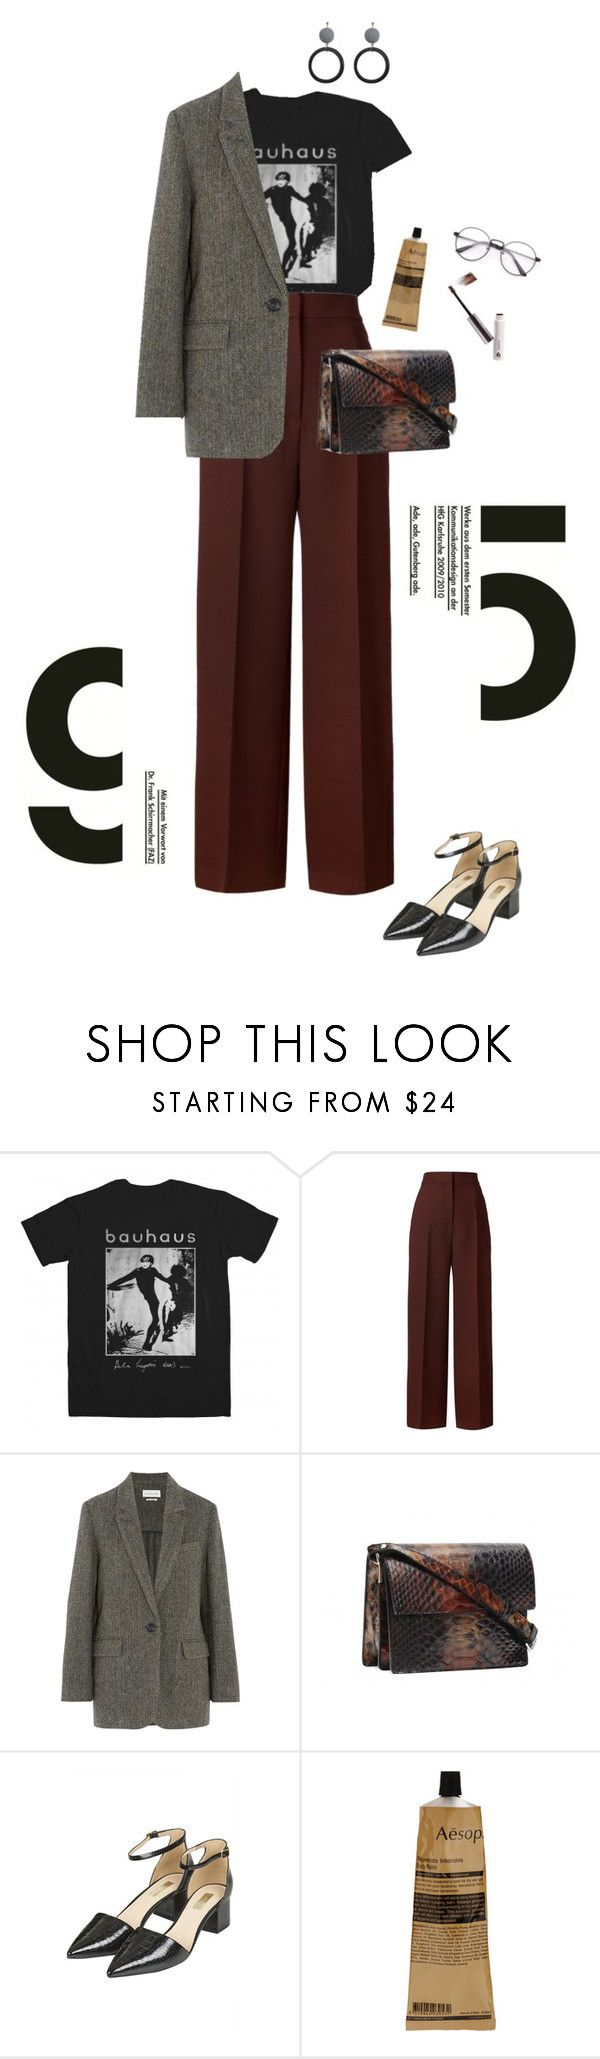 """Untitled #181"" by palina-parker ❤ liked on Polyvore featuring Bela, Rosetta Getty, Étoile Isabel Marant, Topshop and Aesop"